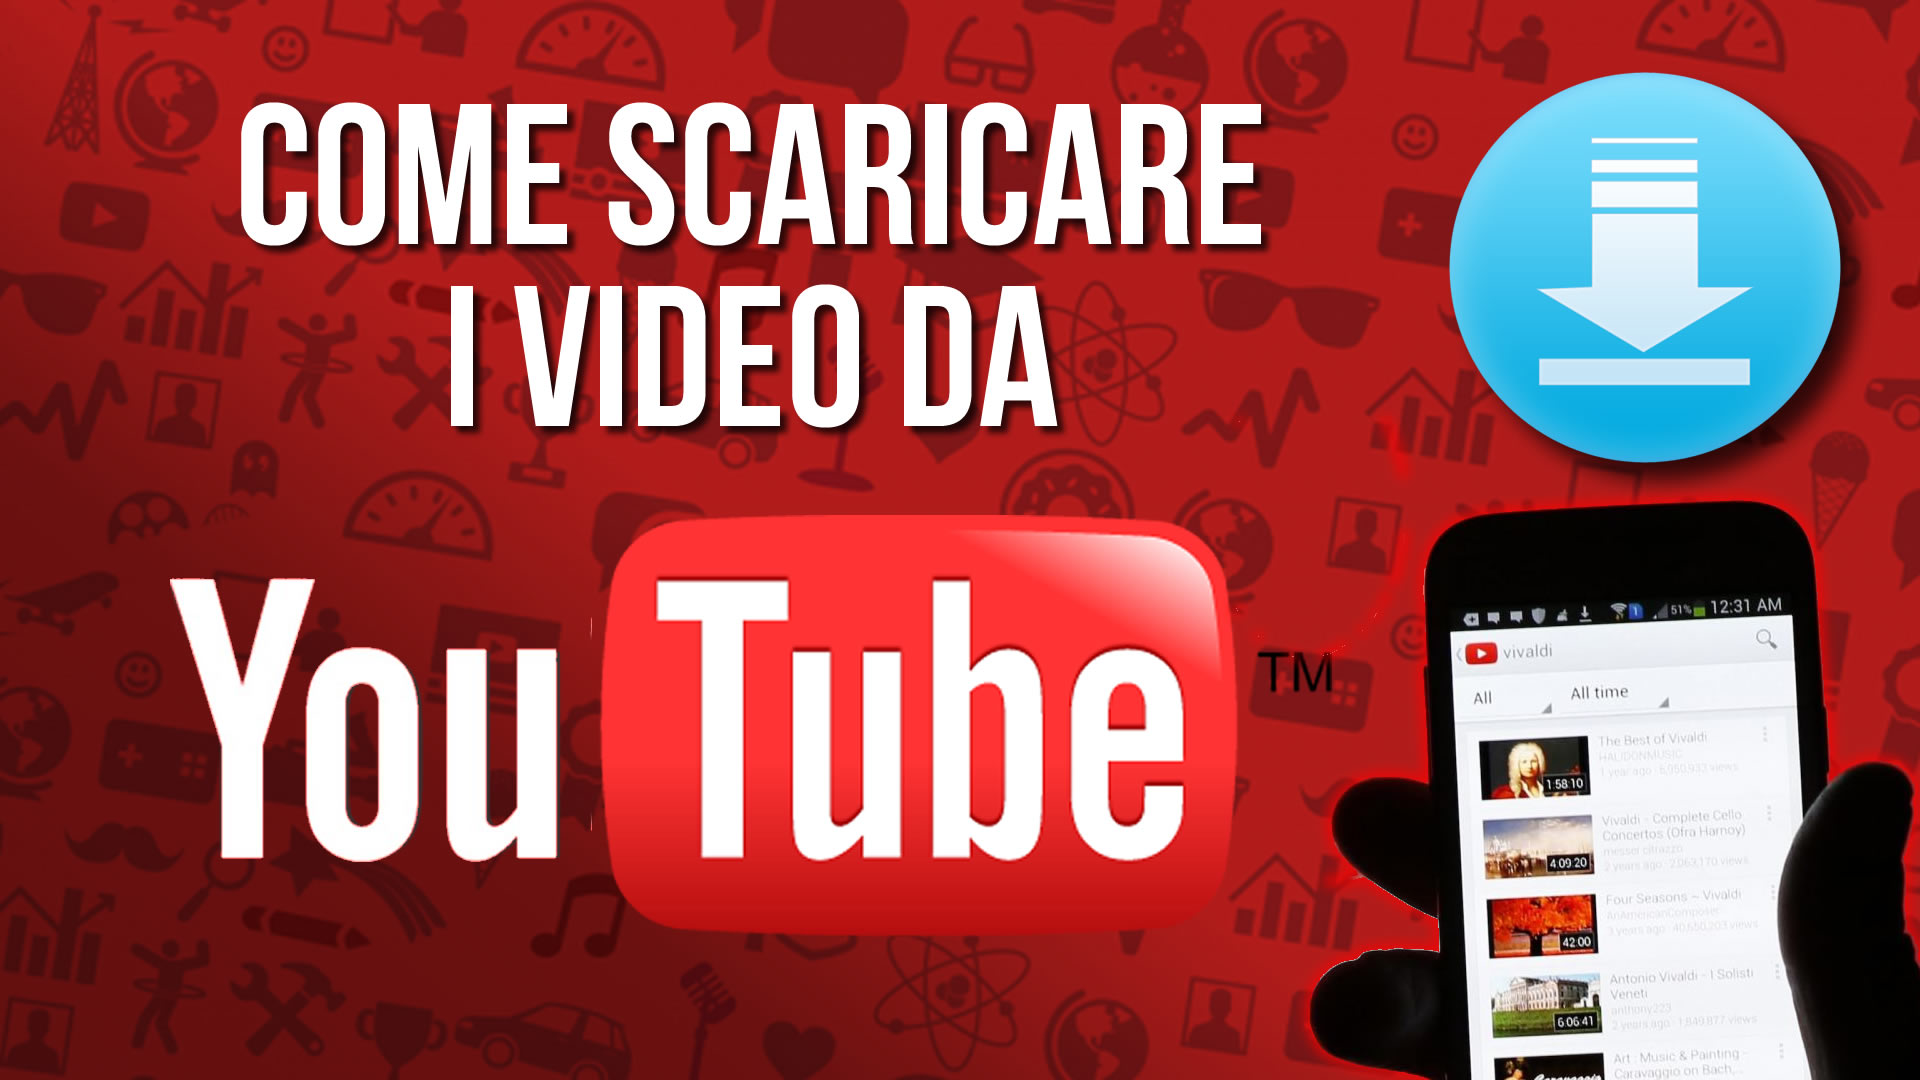 siti porno gratis video come scaricare video da youtube gratis